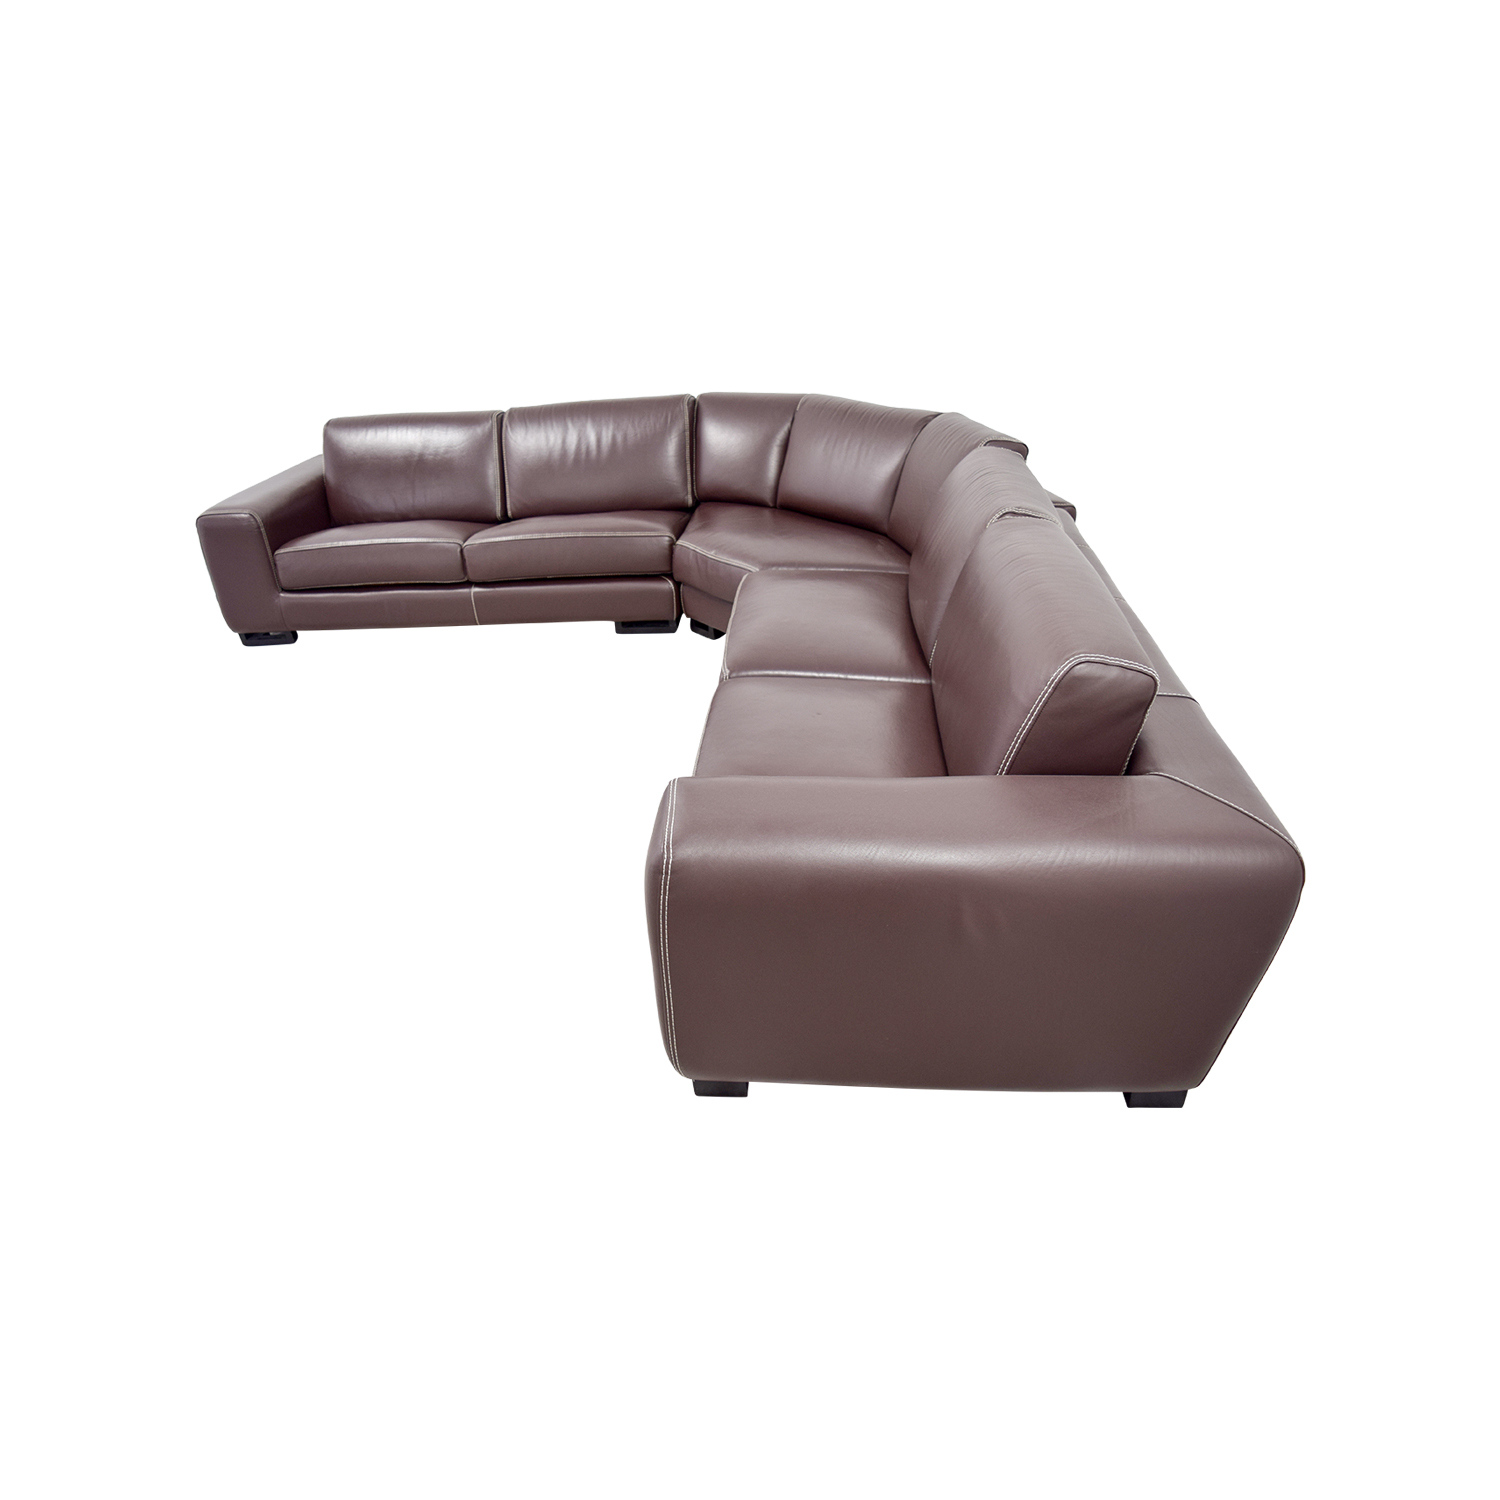 83 off roche bobois roche bobois brown leather sectional sofa bed sofas. Black Bedroom Furniture Sets. Home Design Ideas